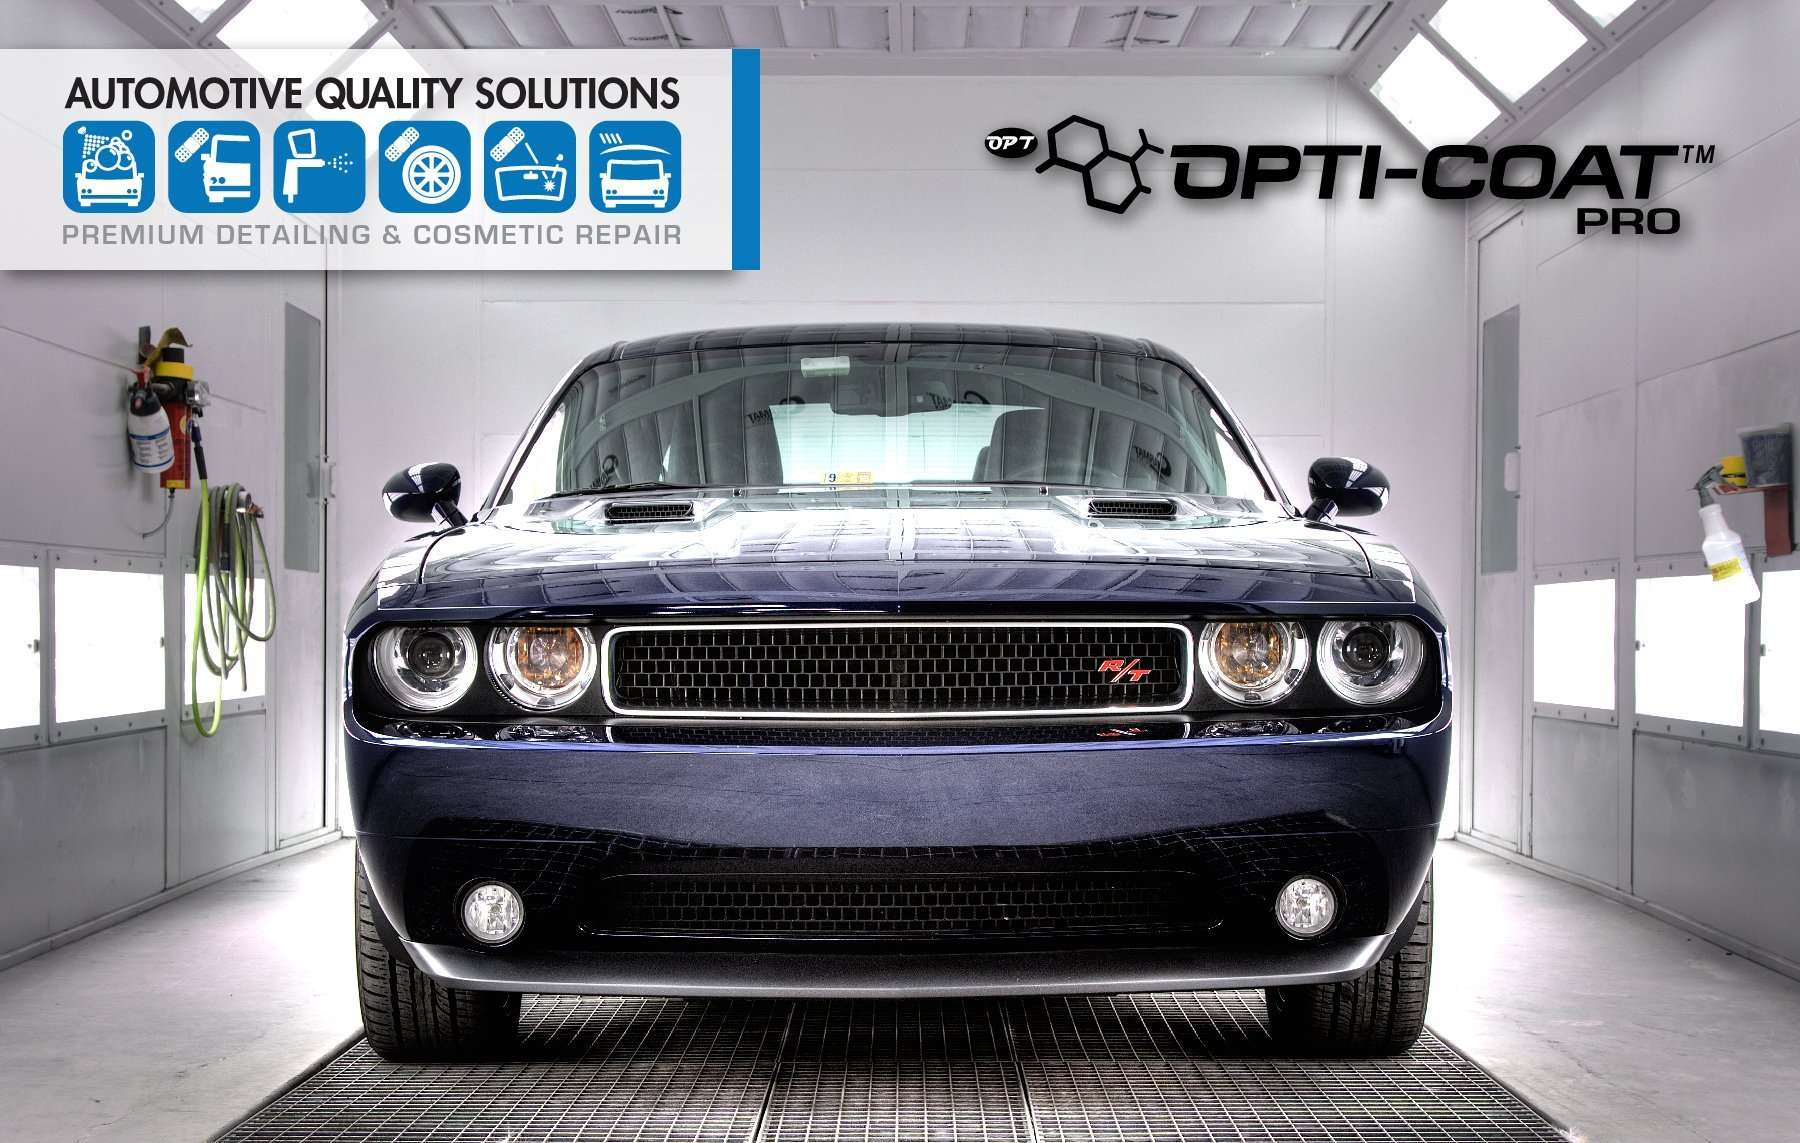 A Dodge Challenger in the AQS Opti-Coat PRO installation booth